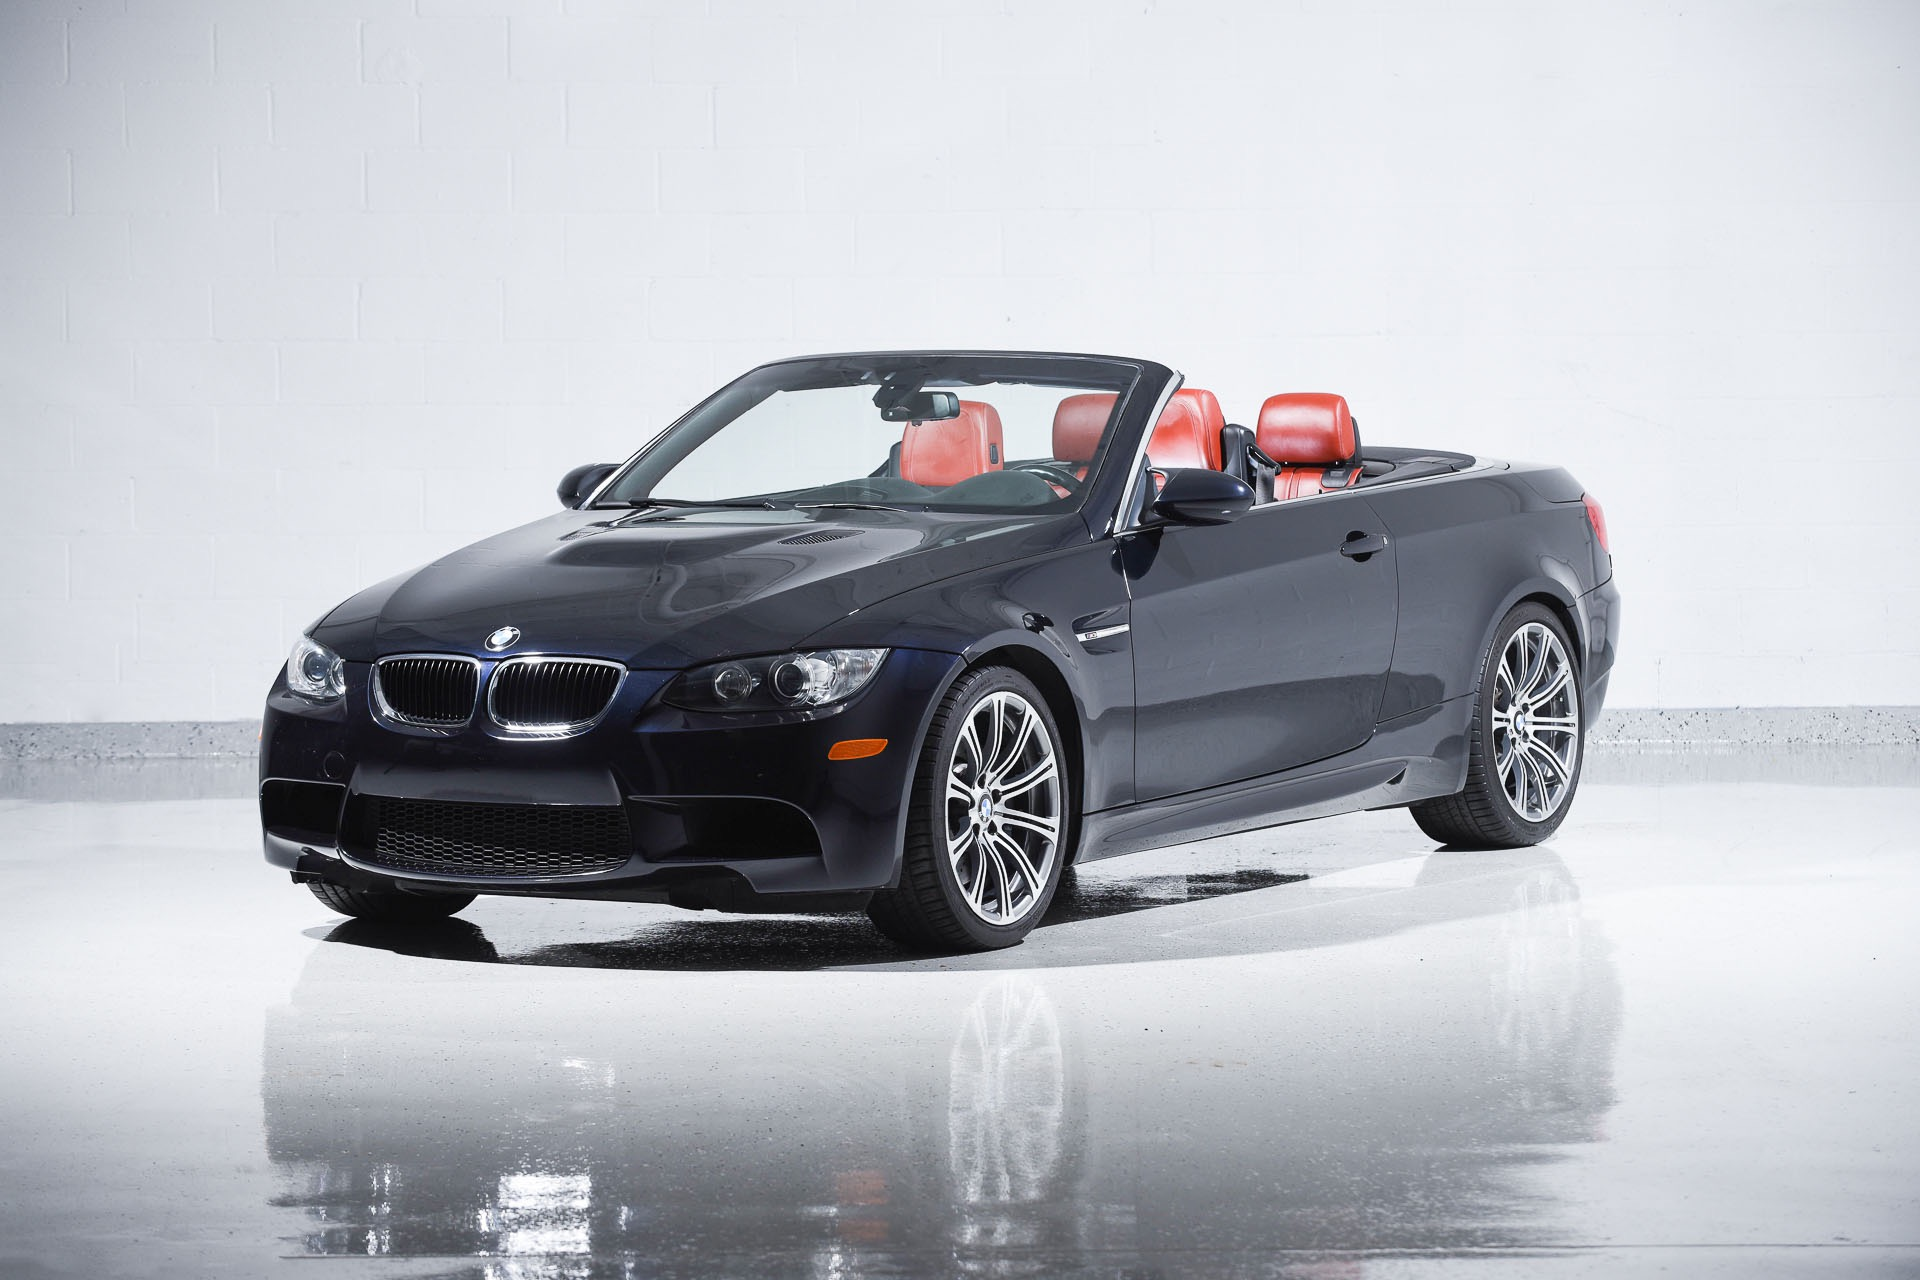 Used 2011 Bmw M3 For Sale 31 900 Motorcar Classics